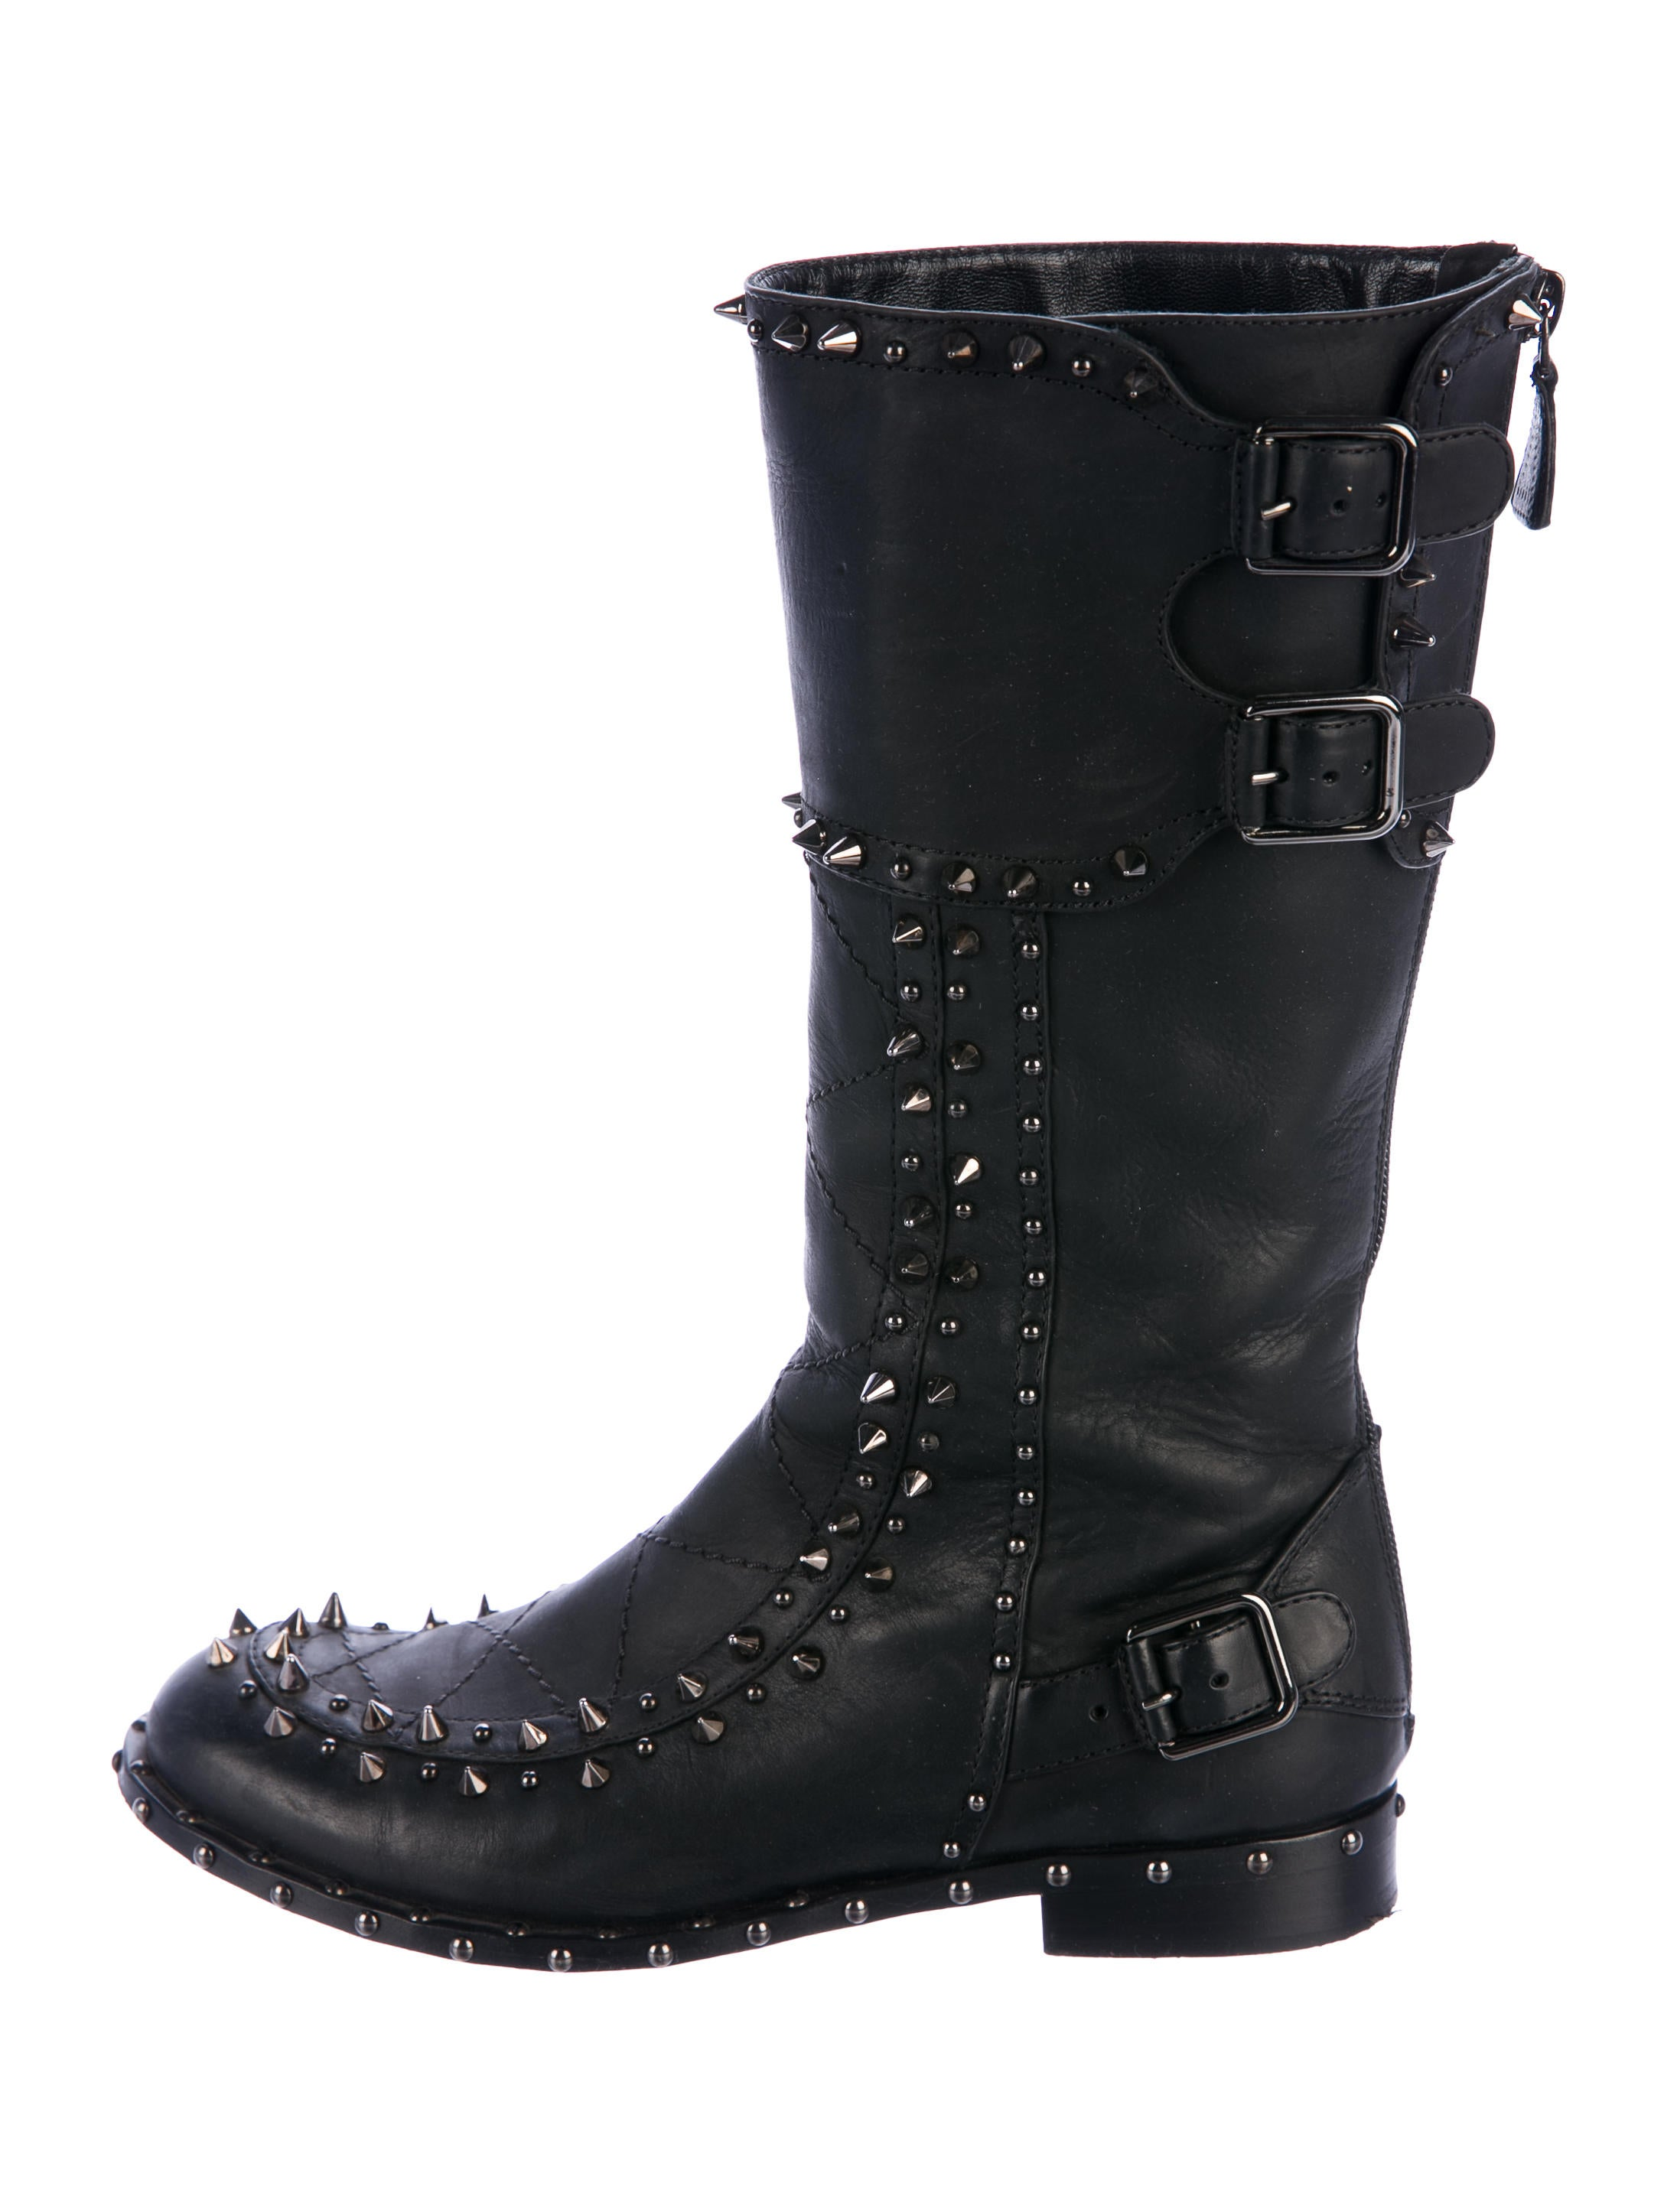 new arrival cheap online from china low shipping fee Laurence Dacade Baltazar Mid-Calf Boots qsiTF